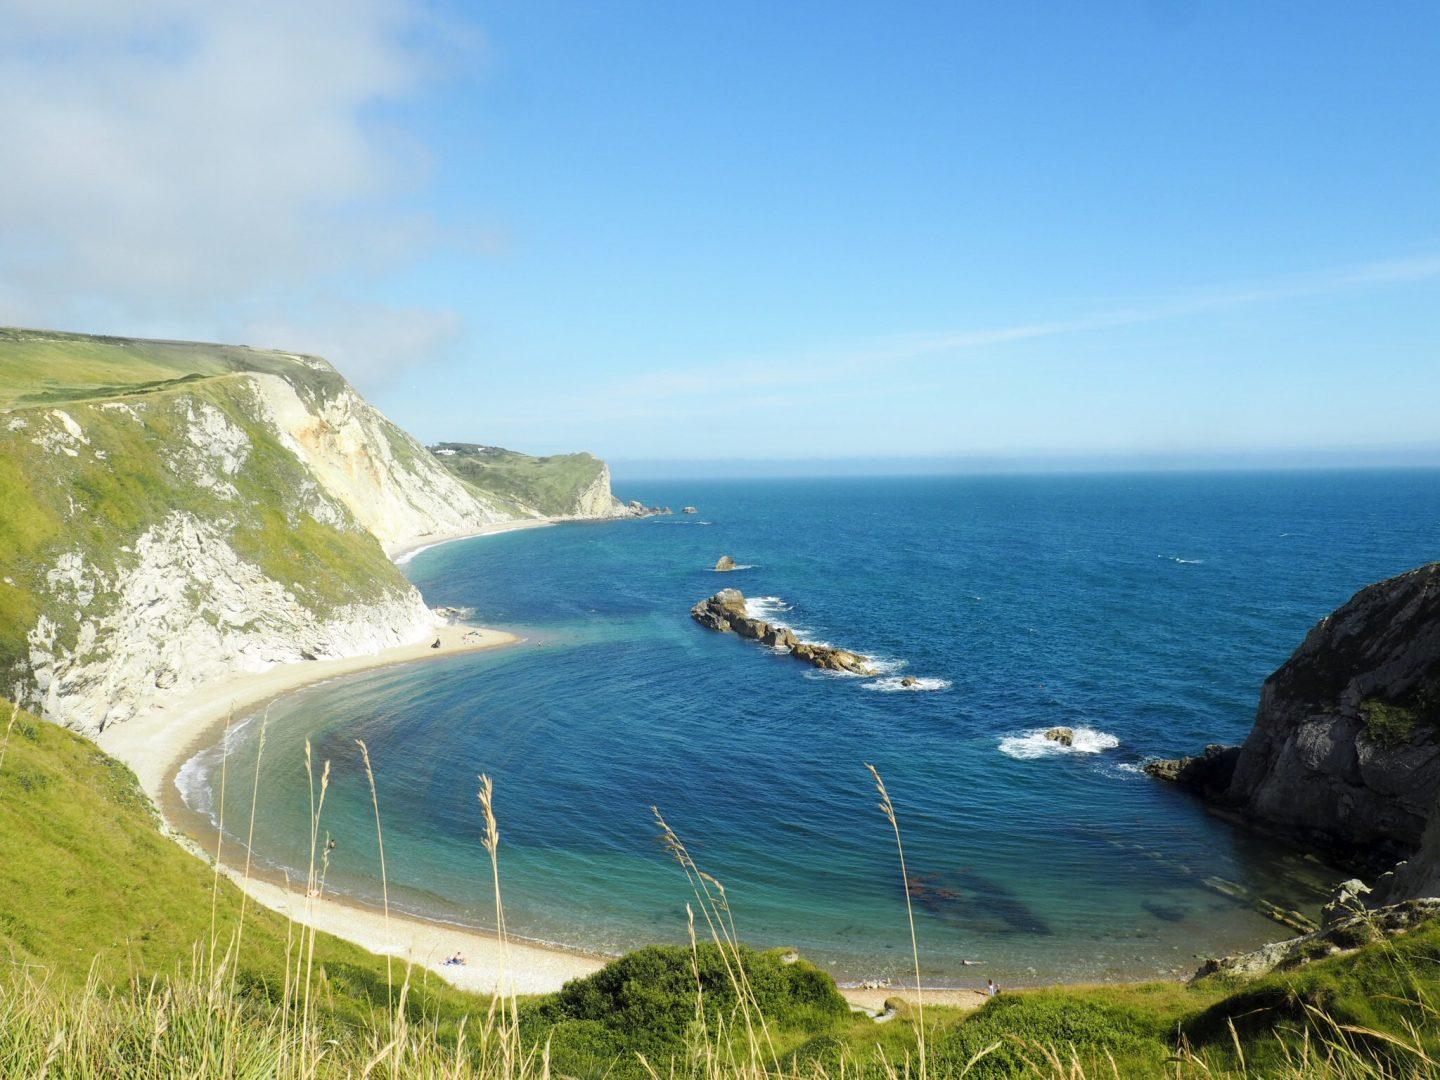 Lulworth Cove in Weymouth